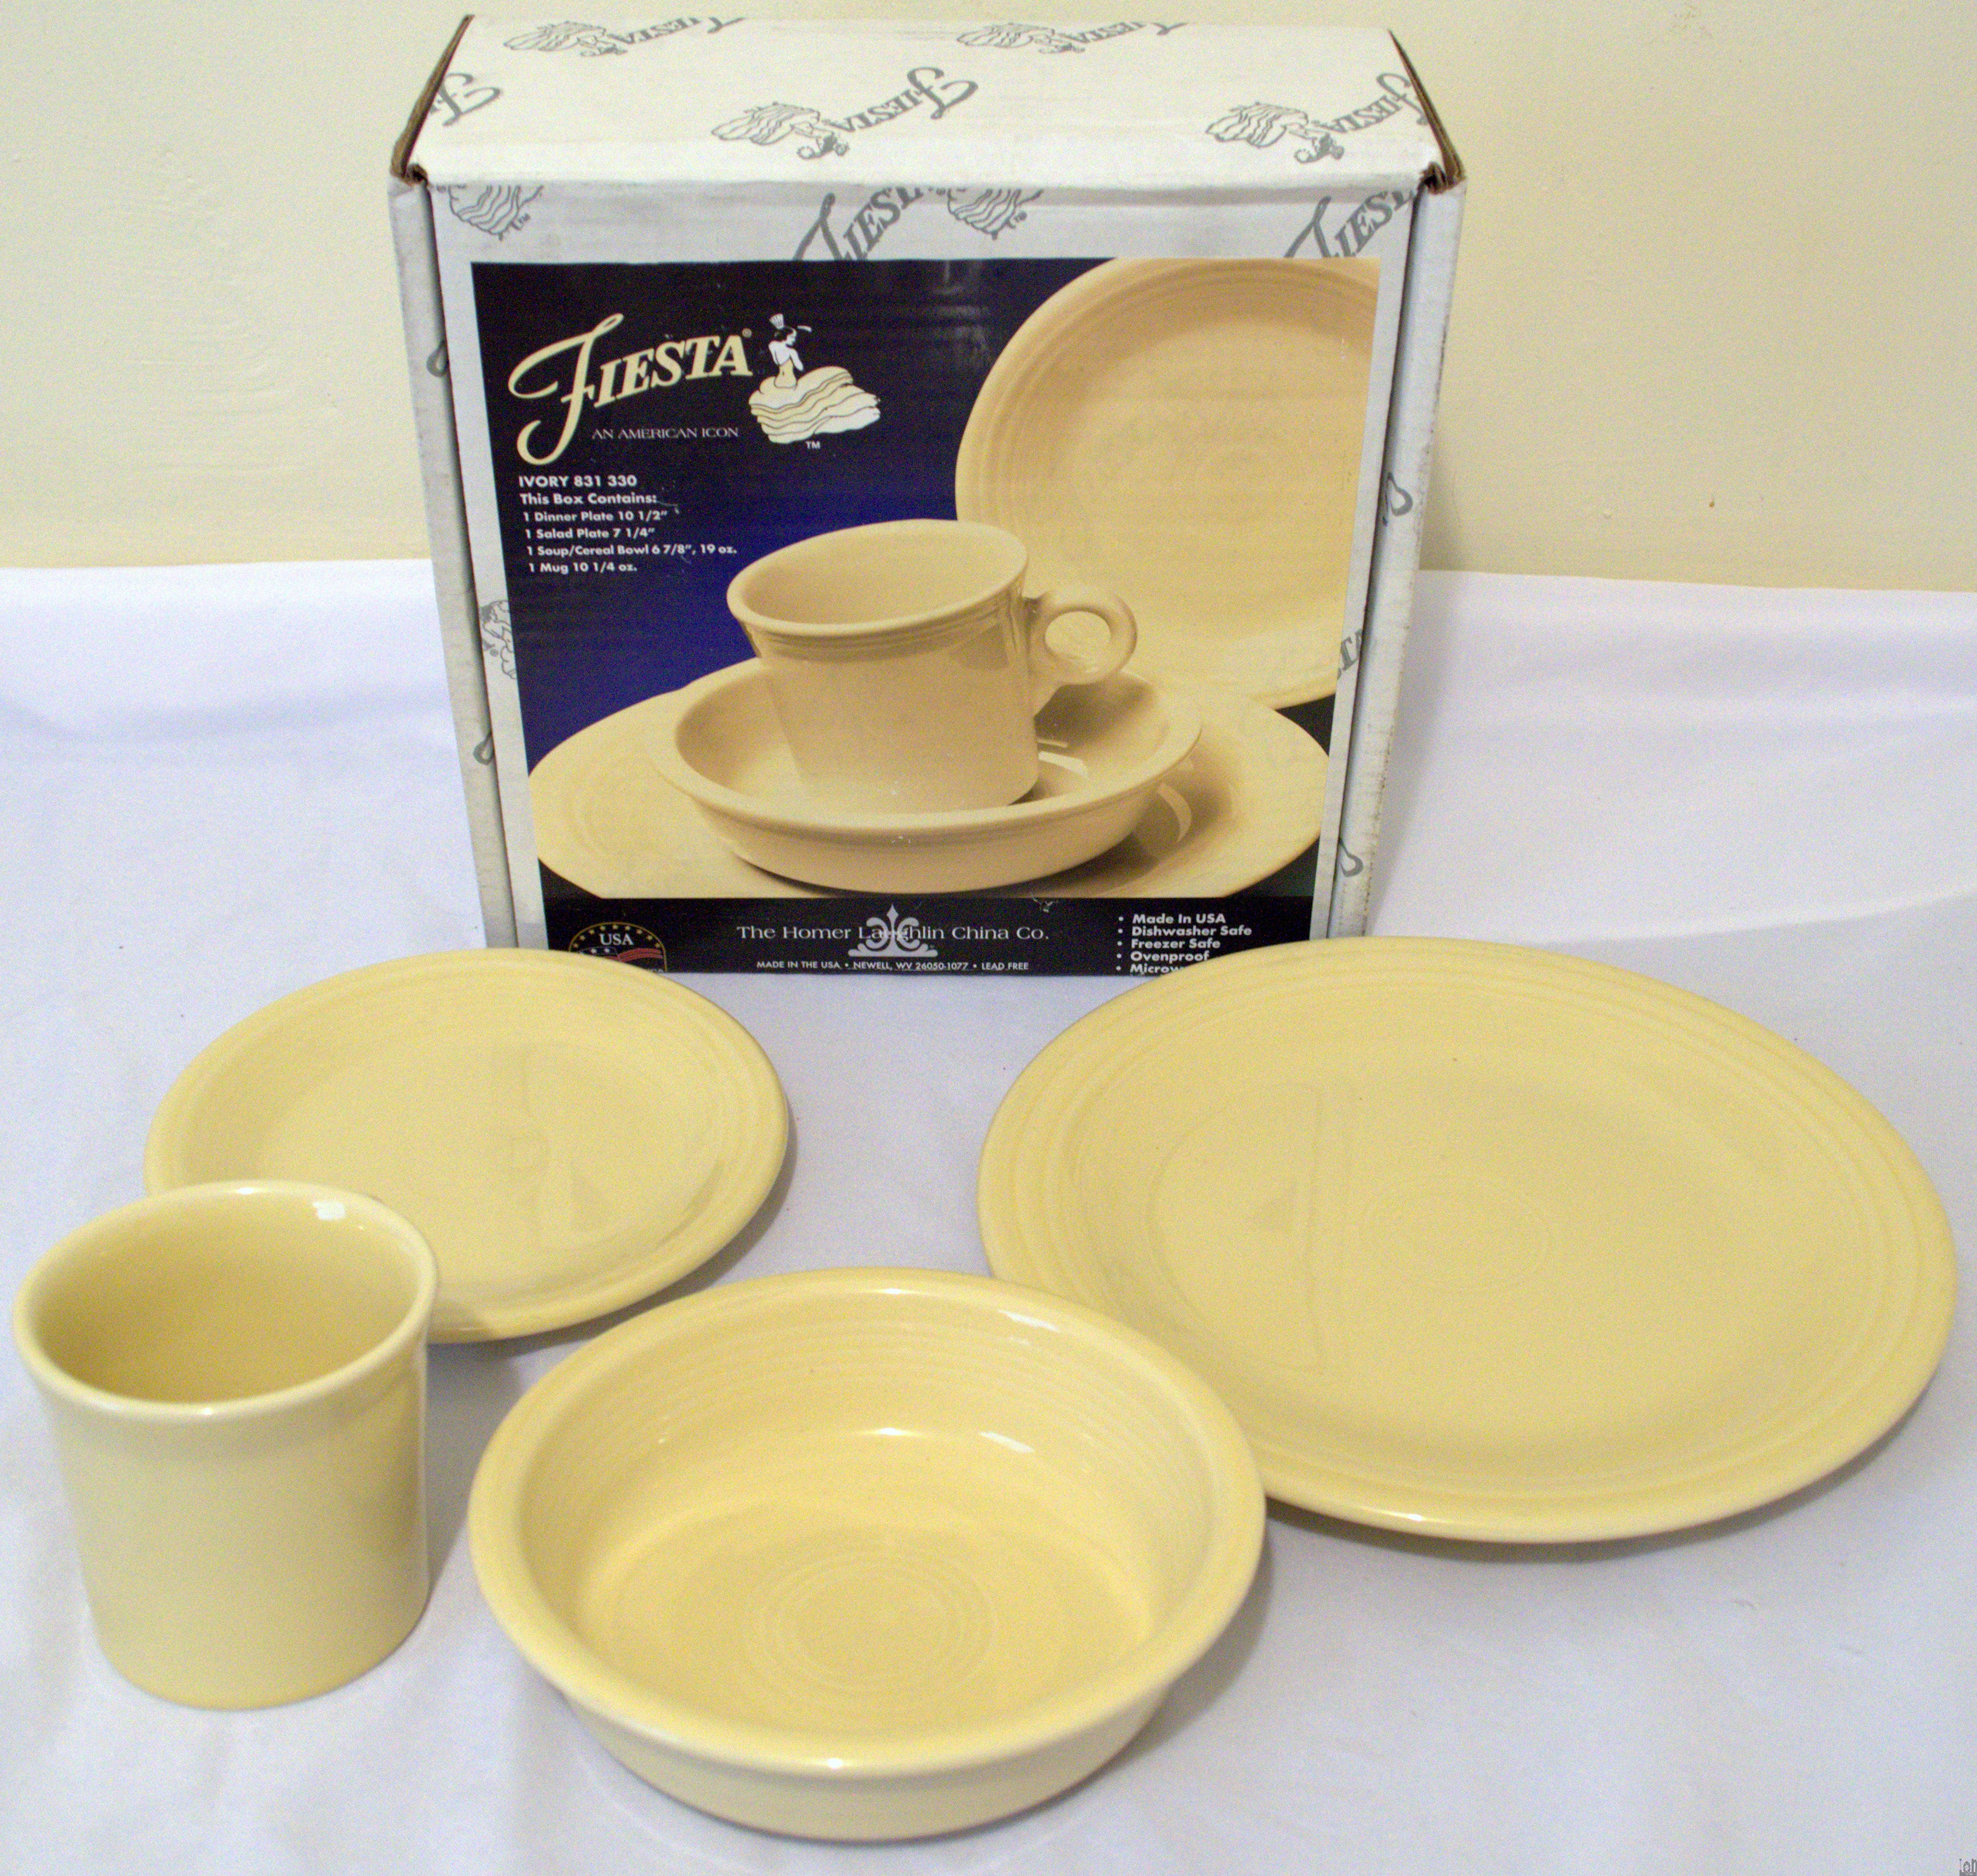 Fiesta Dinnerware 4-Piece Place Setting IVORY Made in USA